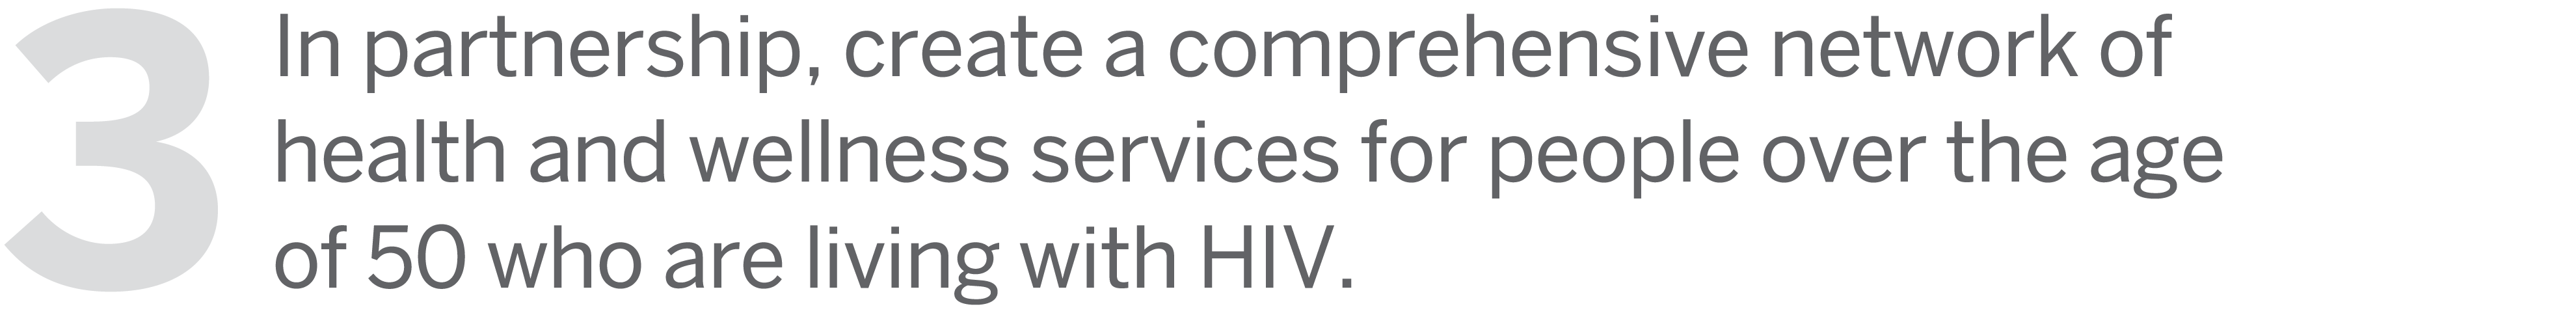 3: In partnership, create a comprehensive network of health and wellness services for people over the age of 50 who are living with HIV